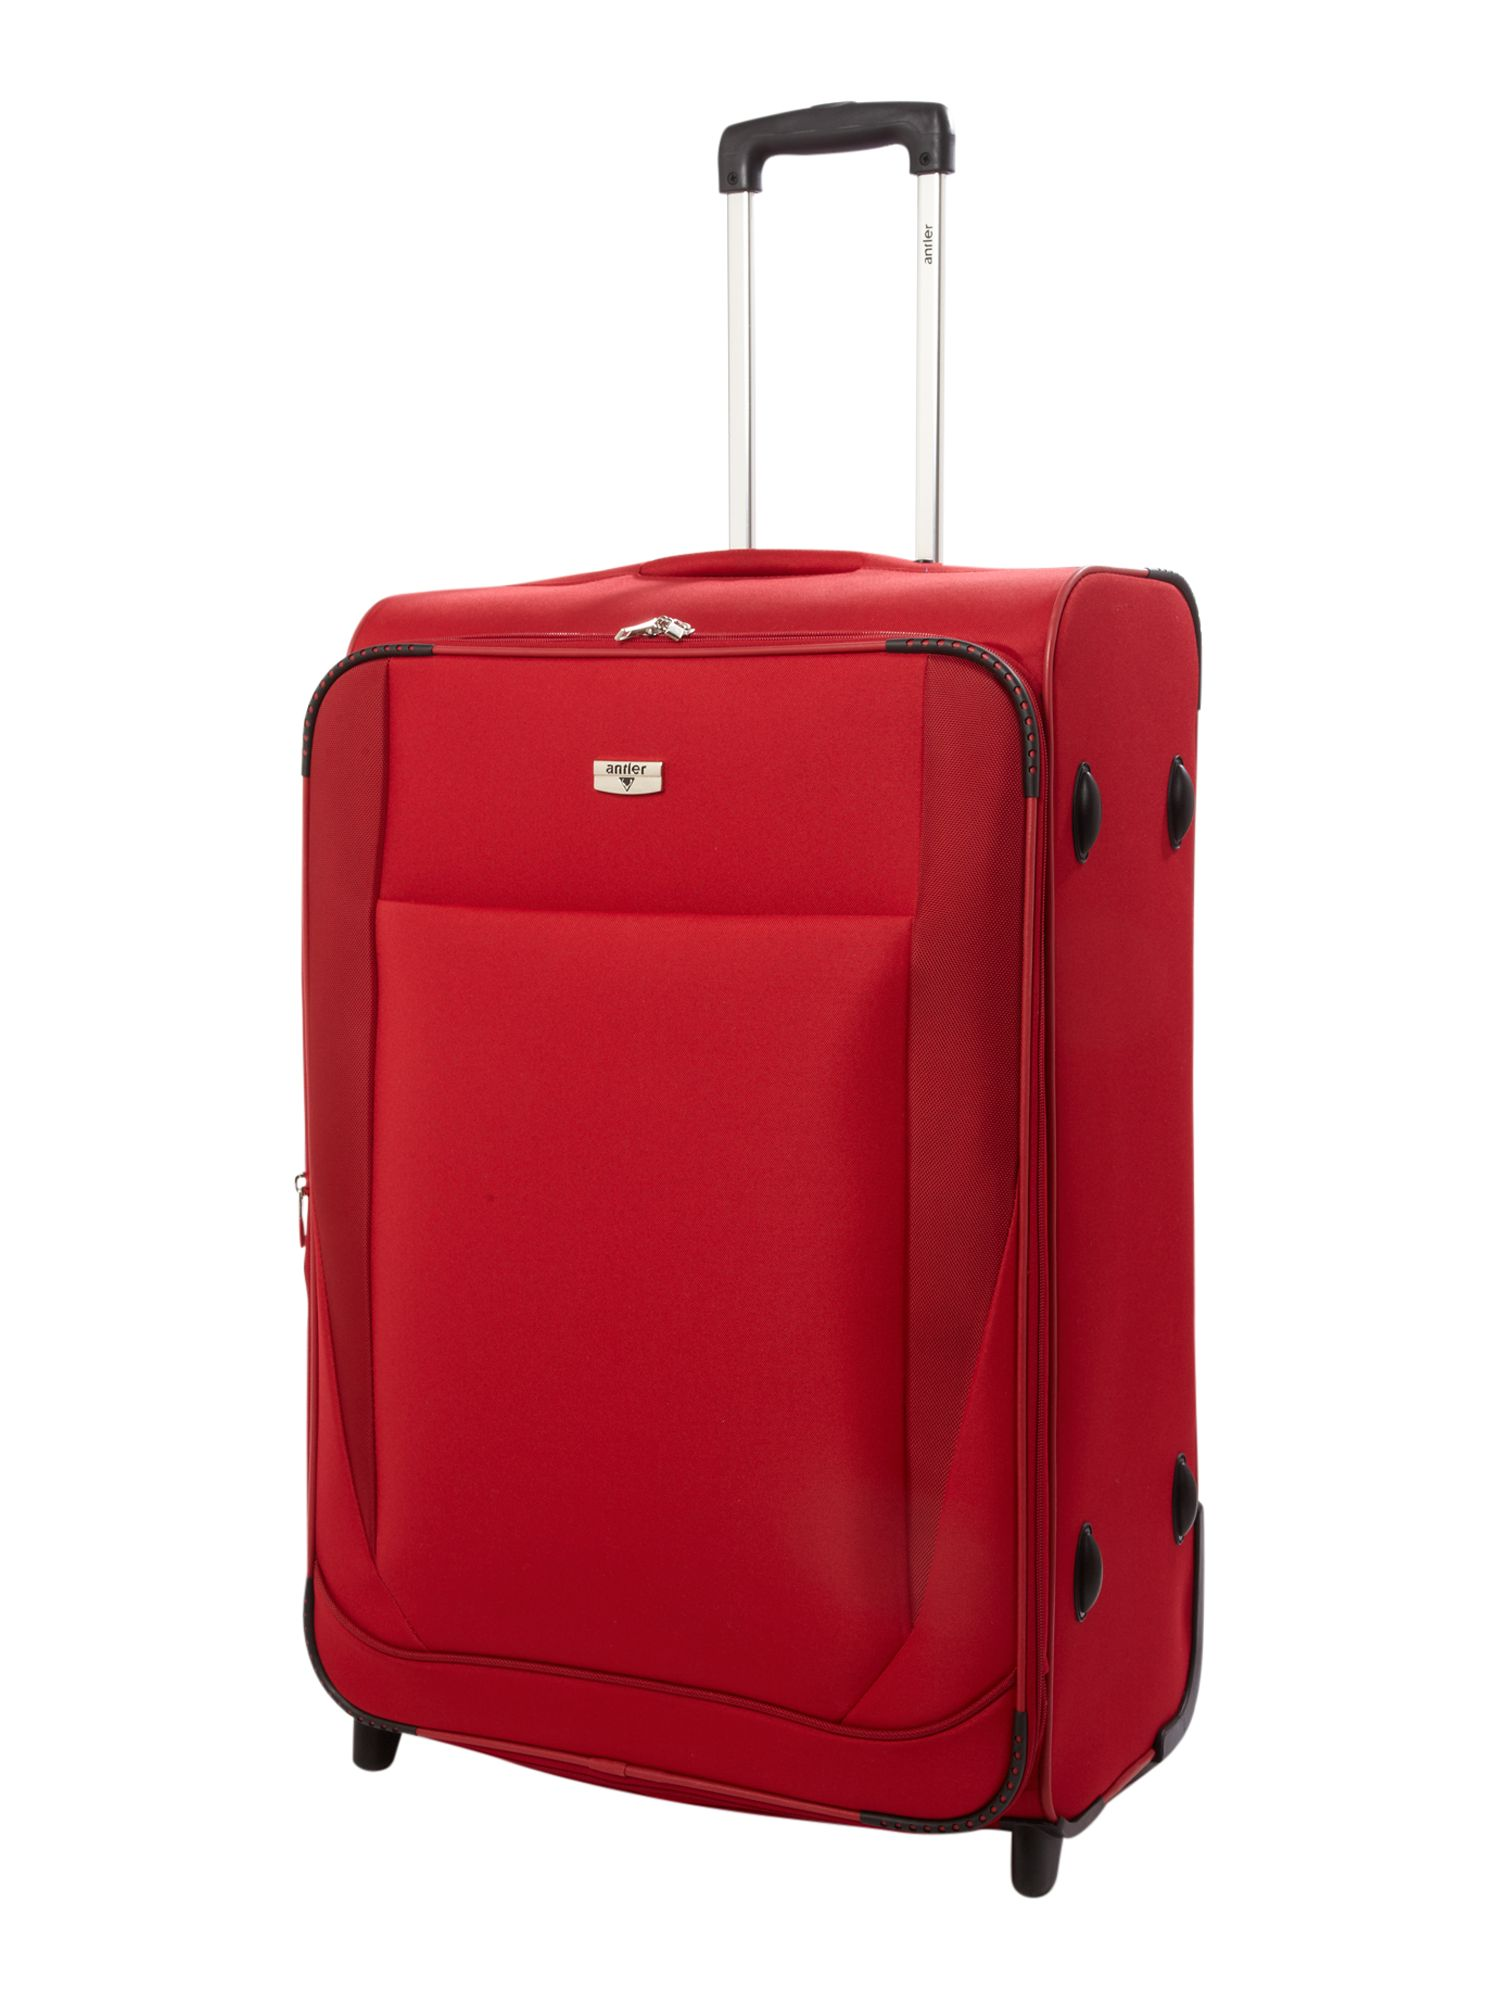 Barina Large 2 Wheel Rollercase Red